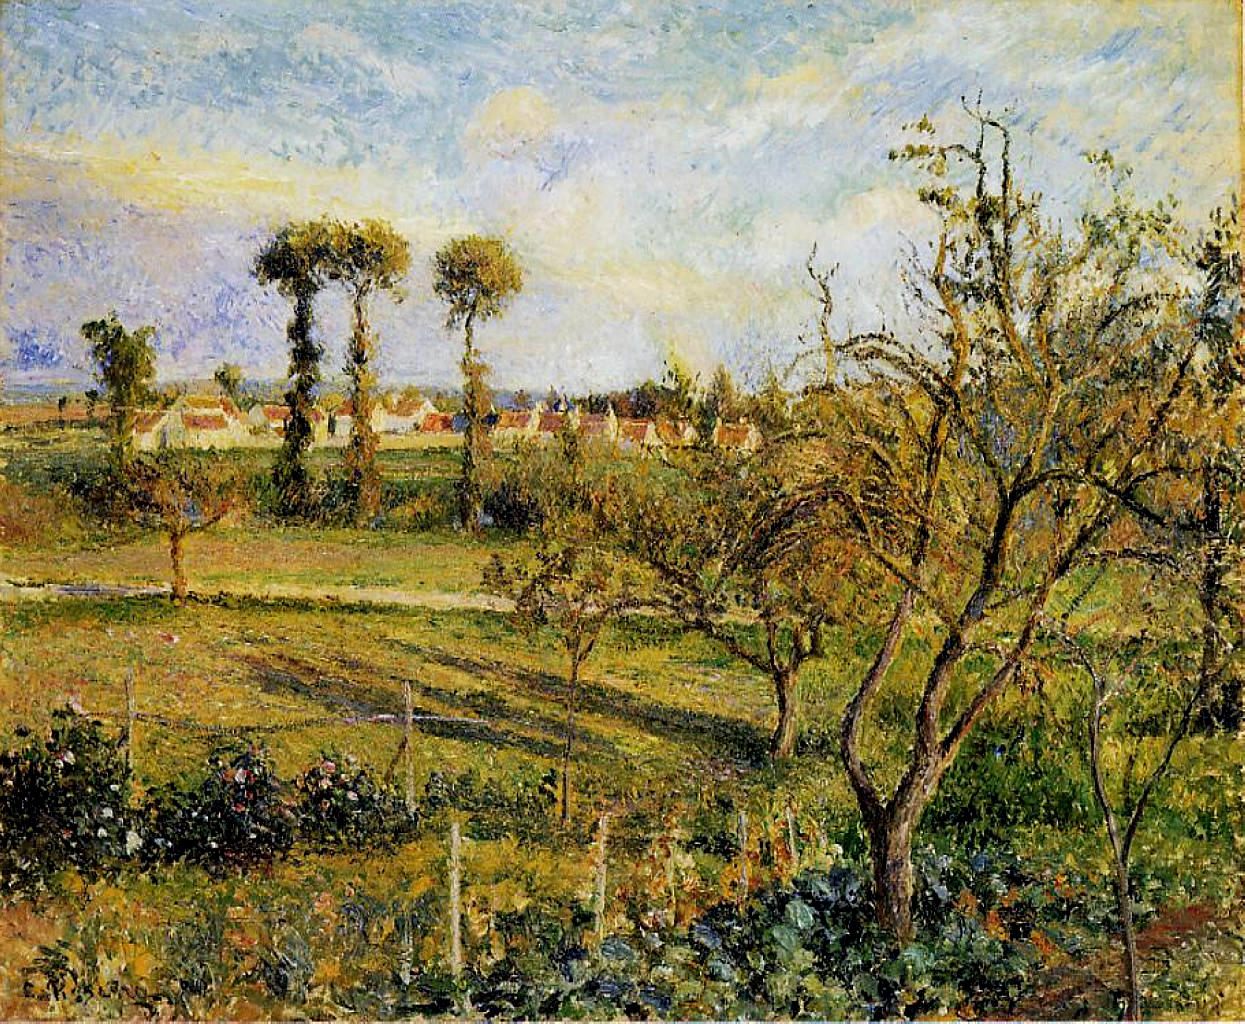 Sunset at Valhermeil, near Pontoise by Camille Pissarro, 1880